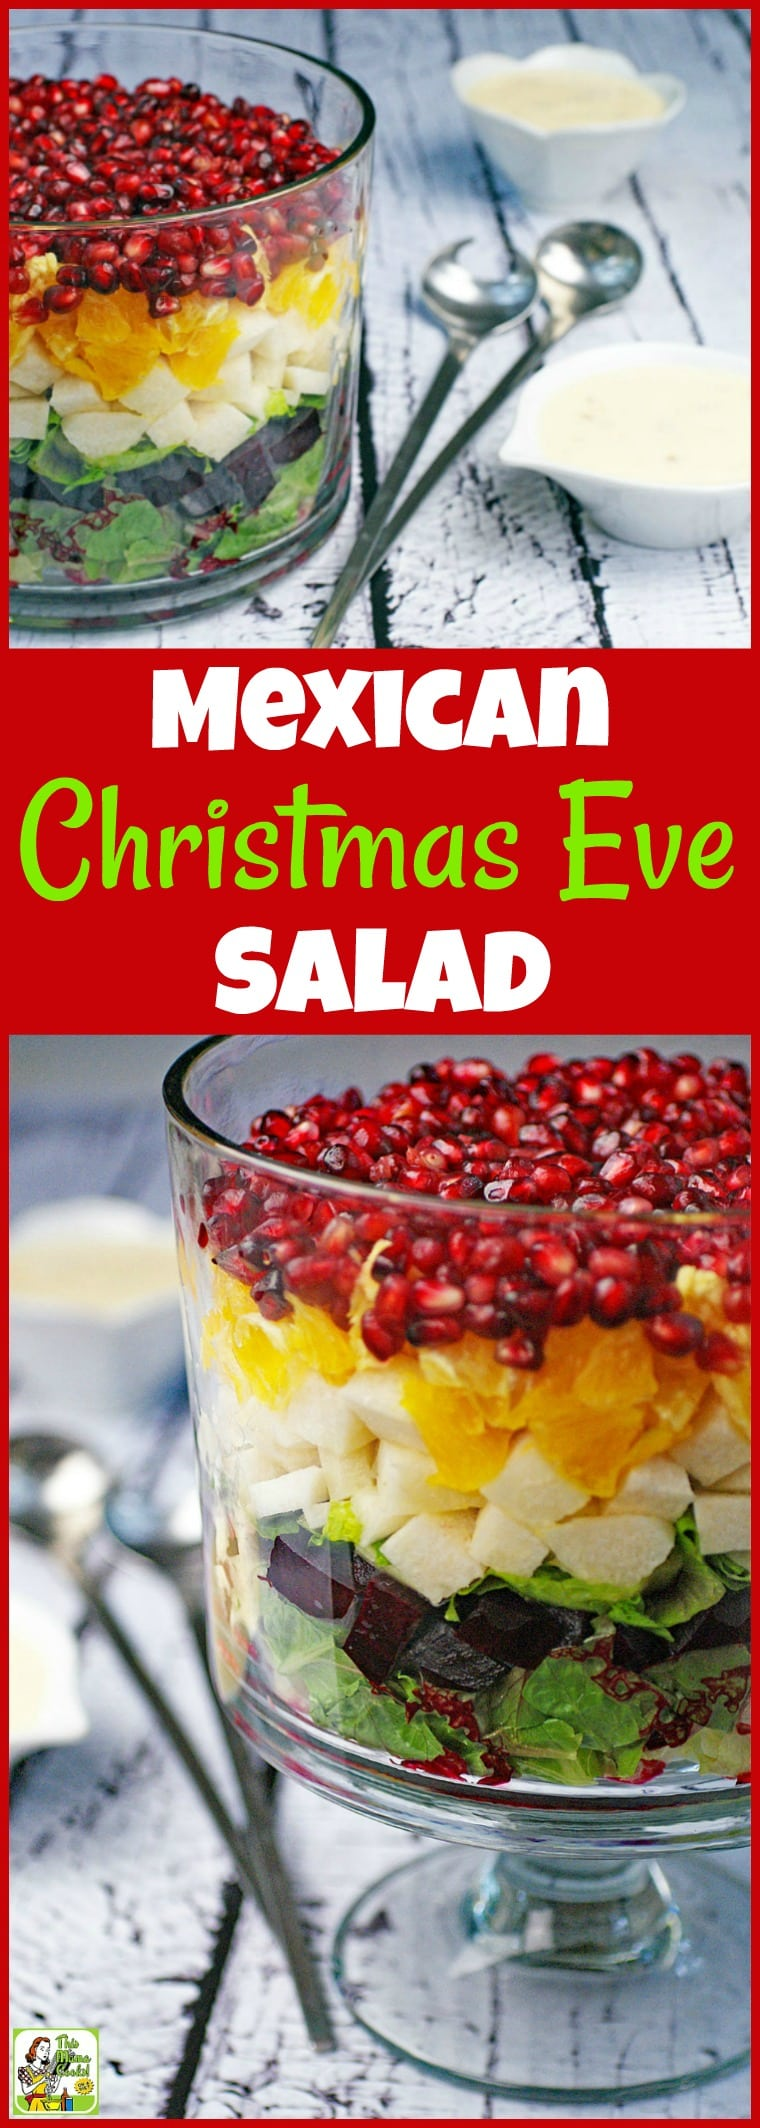 Make something different for the holidays or any time of the year! Learn how to make a Layered Mexican Christmas Eve Salad in a trifle bowl. This traditional and easy Christmas Eve dinner salad recipe is easy to make, healthy, and festive looking! #Christmas #salad #triflebowl #Mexican #ChristmasEve #healthy #glutenfree #beets #pomagranate #Mexicanfood #recipe #easy #recipeoftheday #healthyrecipes #easyrecipes